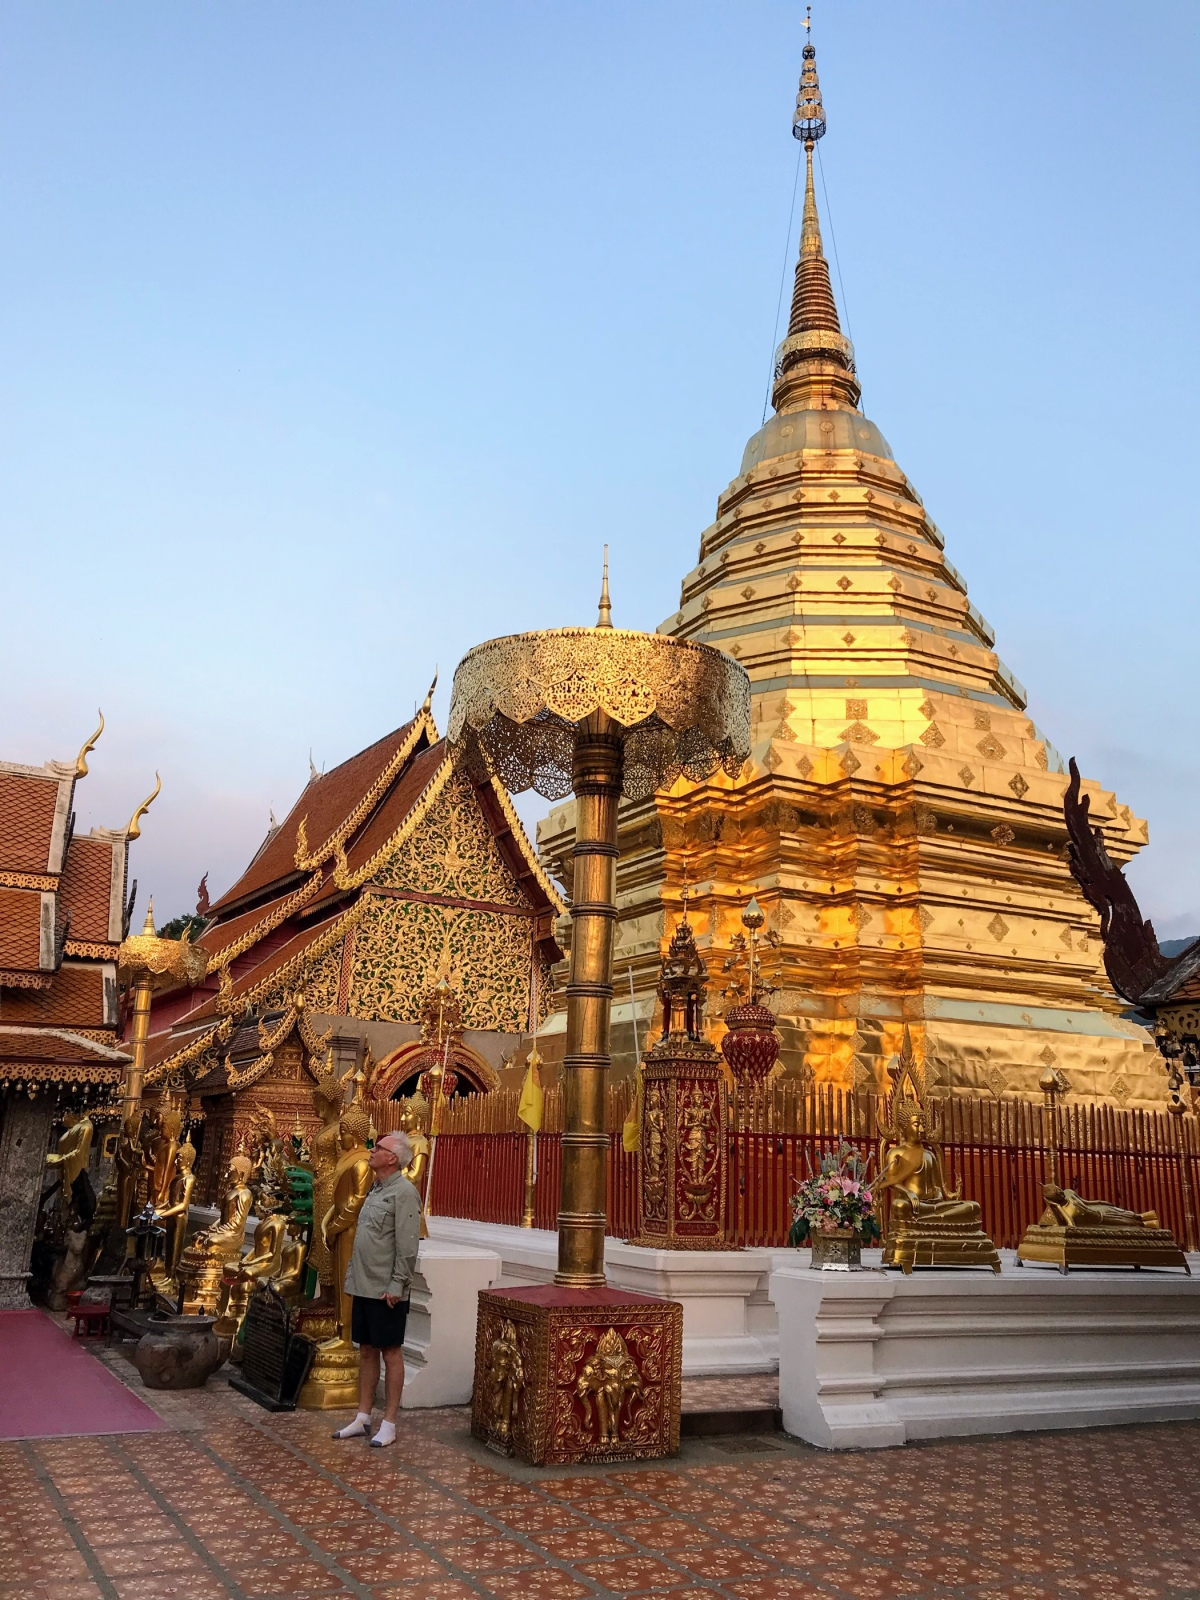 Sunrise at Wat Phra That Doi Suthep at the top of the Suthep Mountain —Chiang Mai